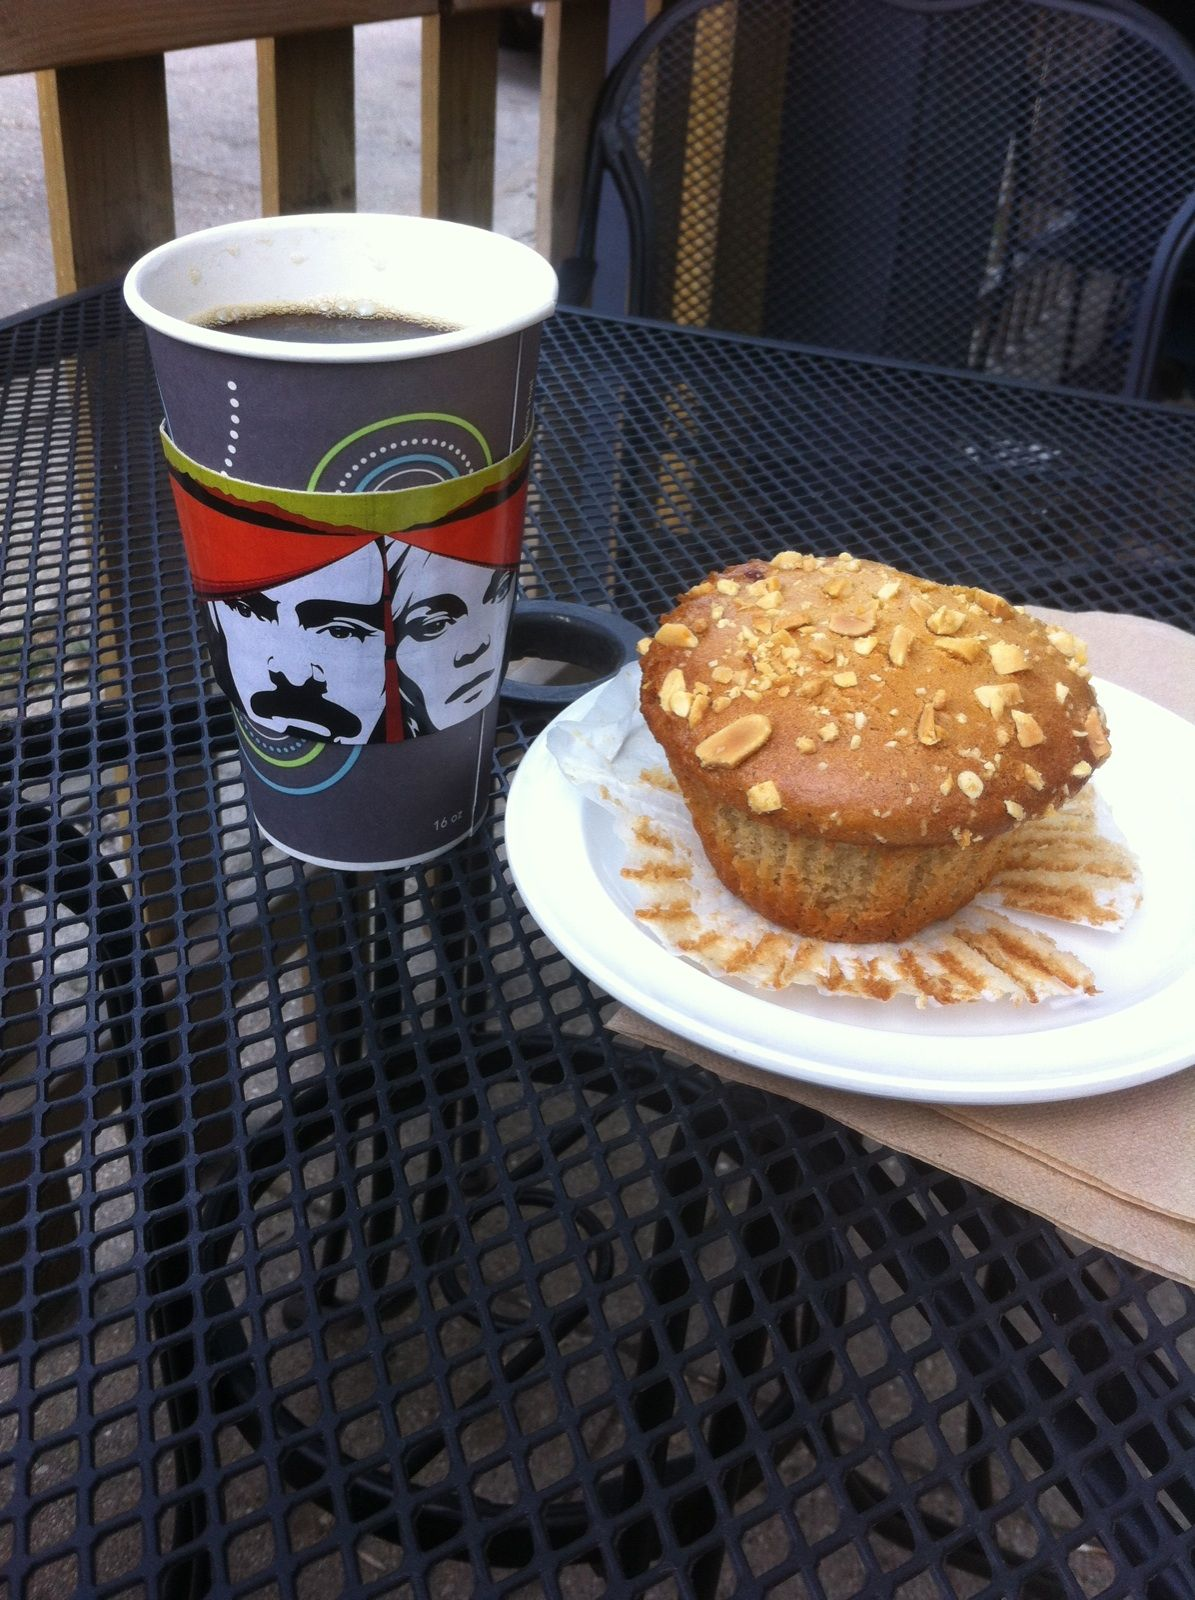 Met friend Richard for coffee (and a yummy peanut butter